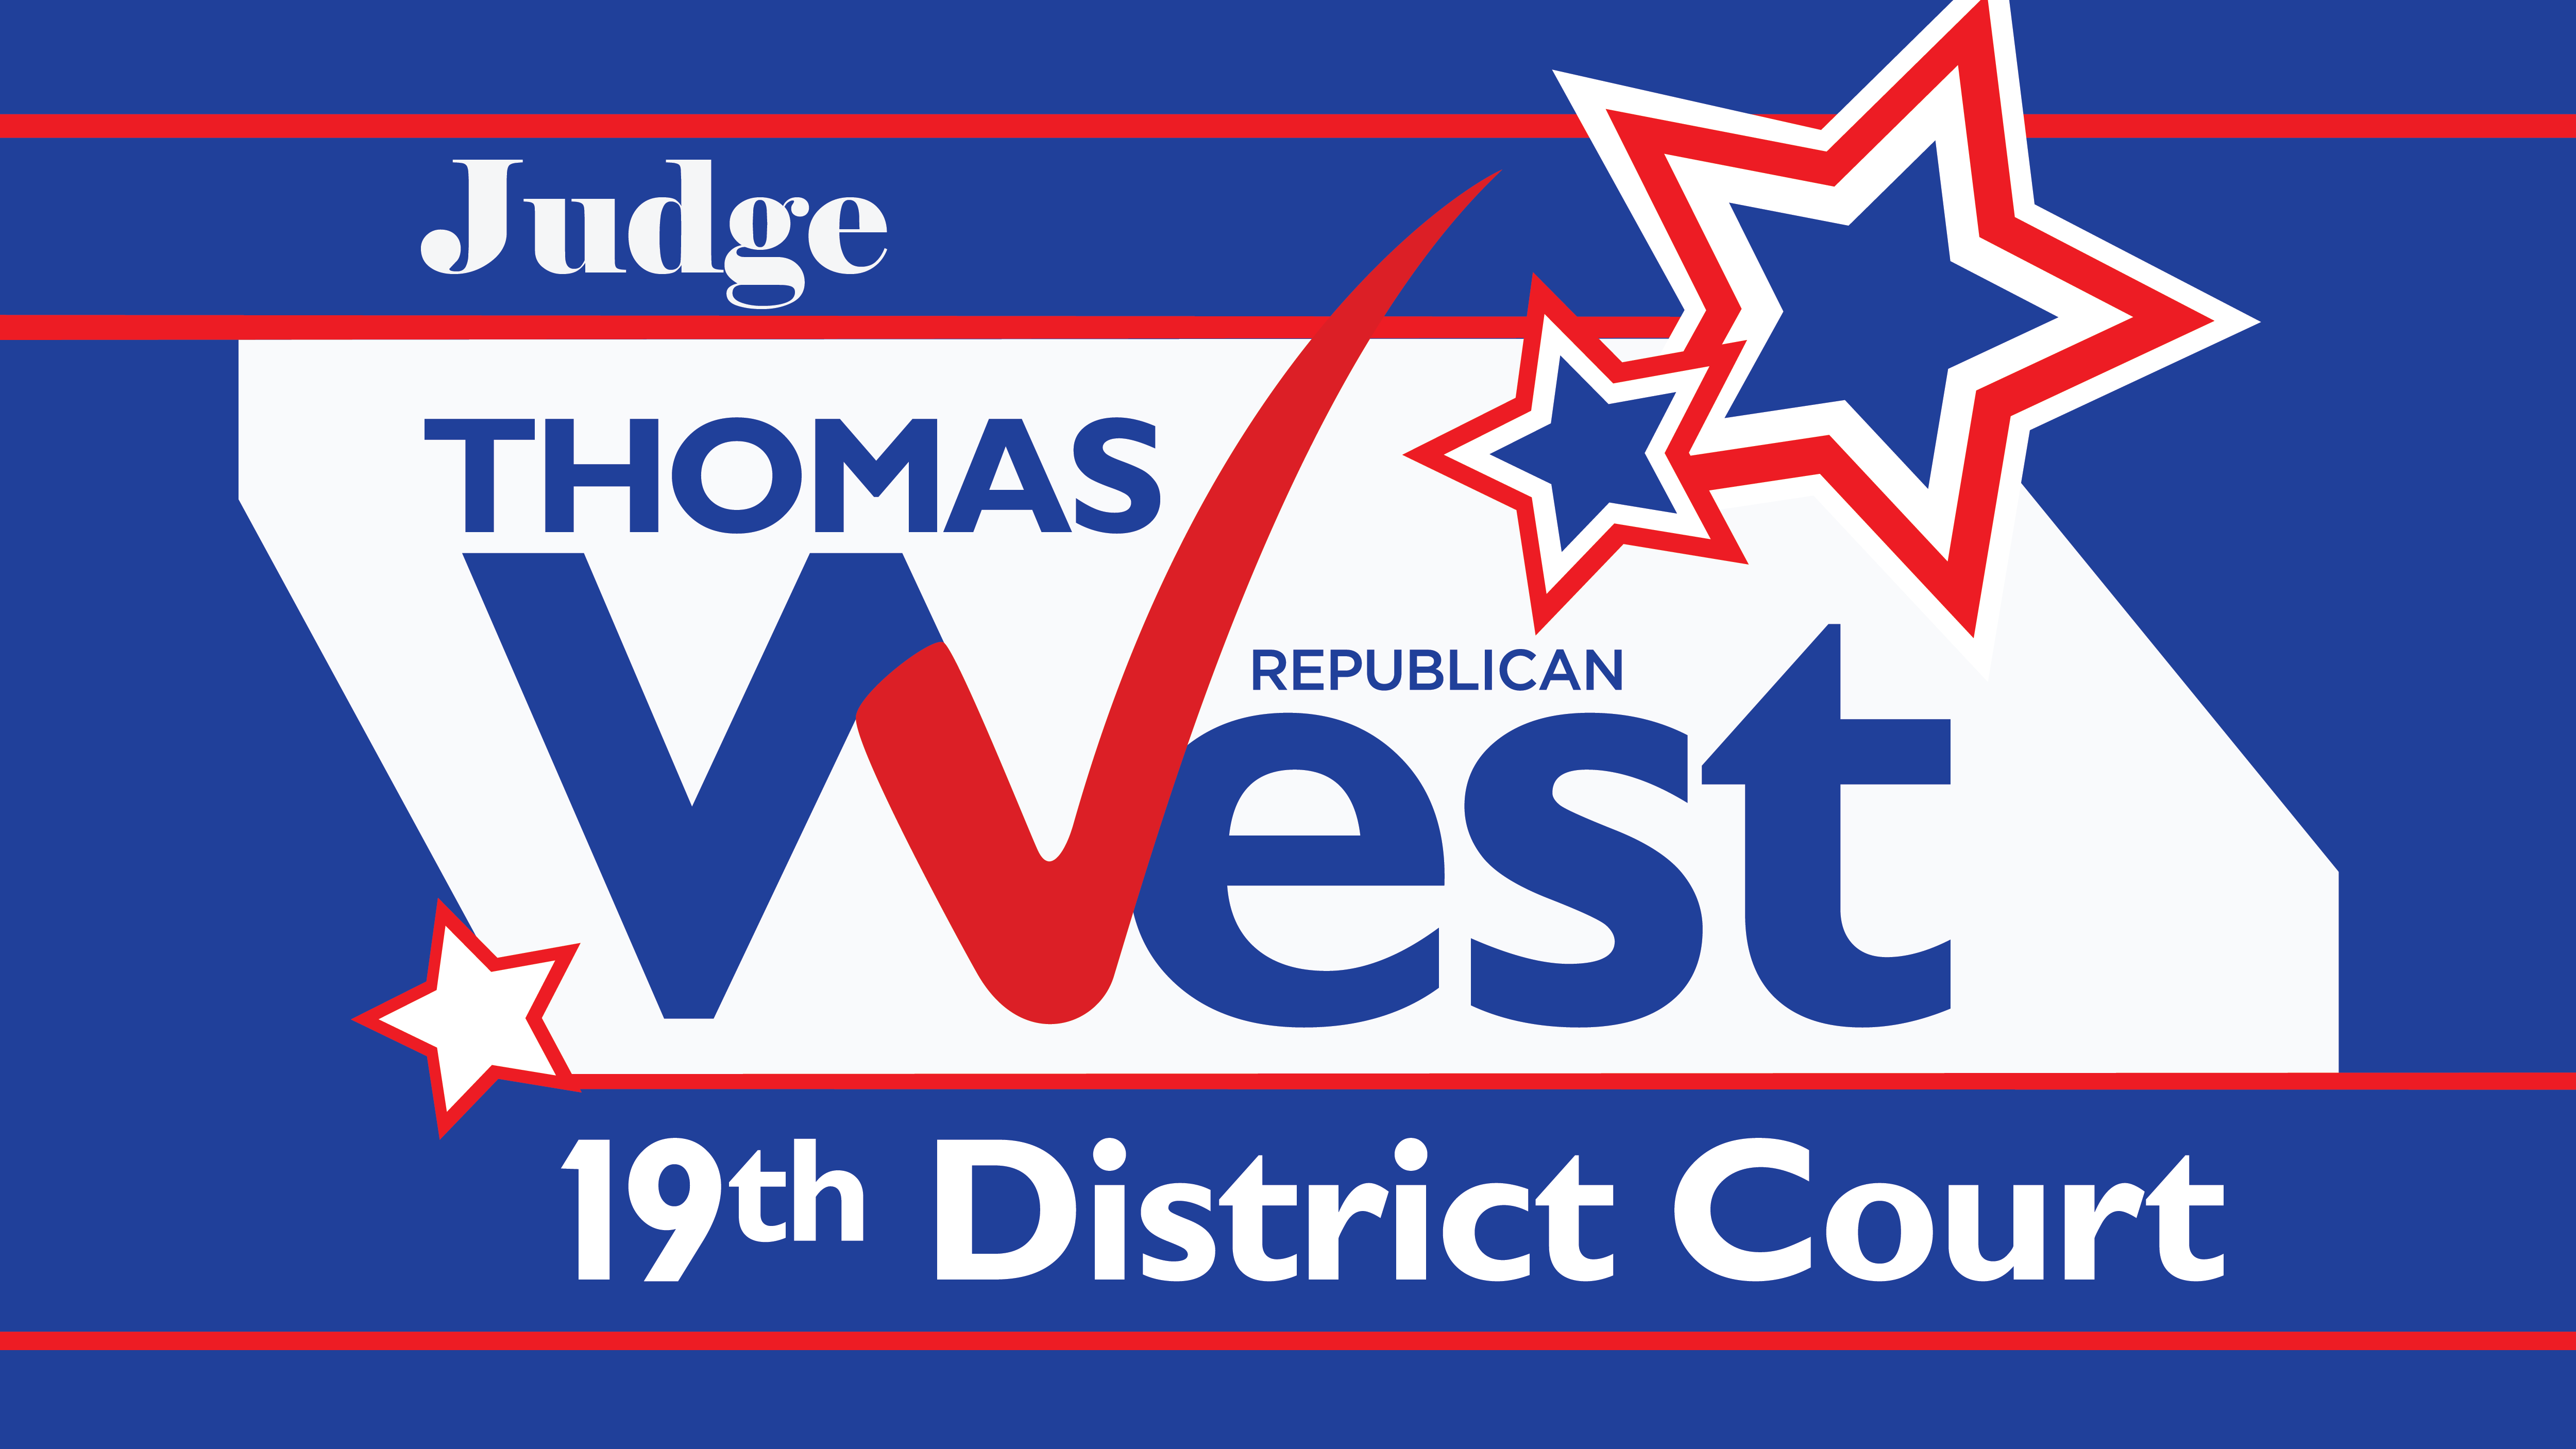 Judge Thomas West Logo